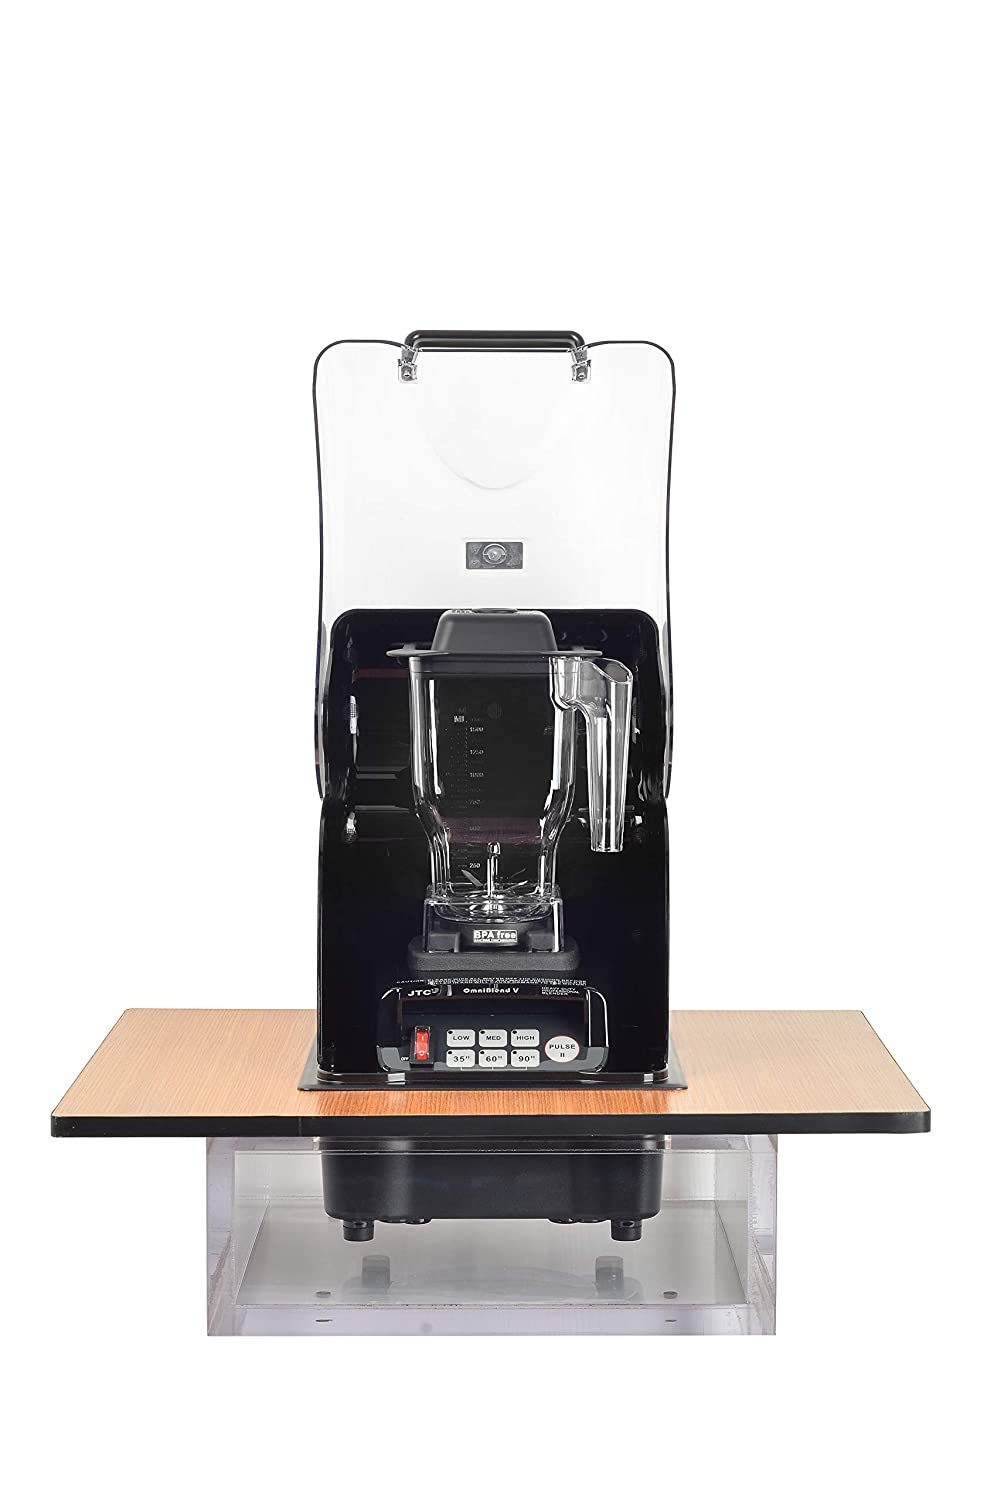 OmniBlend Omni-Q2 Commercial Blender with Built-in Full Sound Enclosure Shield for the Professional Kitchen, Heavy Duty 3-Speed, Self-Cleaning, Multifunctional 2-in-1 Wet Dry Blades, 1.5 Liter Jar